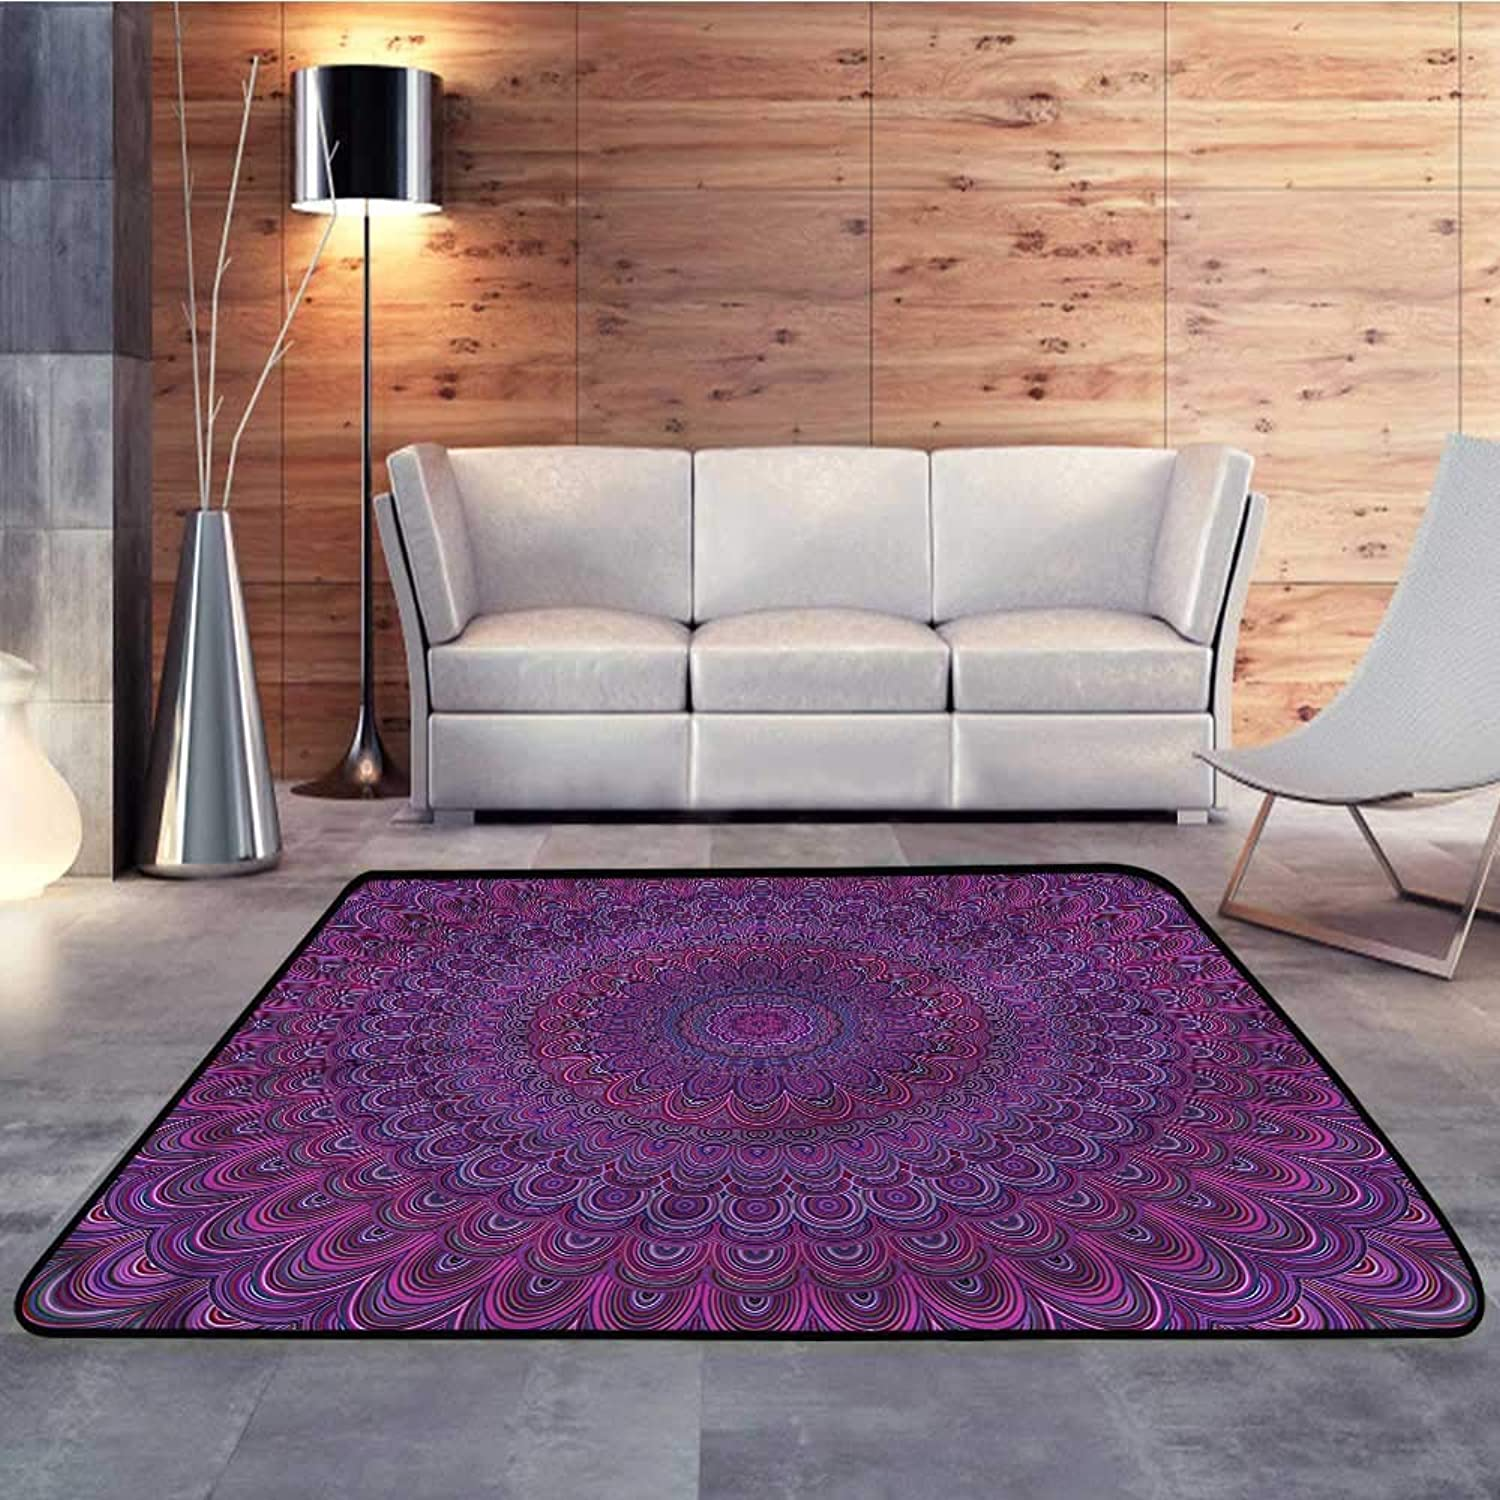 Kids rugsEggplant,Vintage Purple MandalaW 35  x L59 Slip-Resistant Washable Entrance Doormat